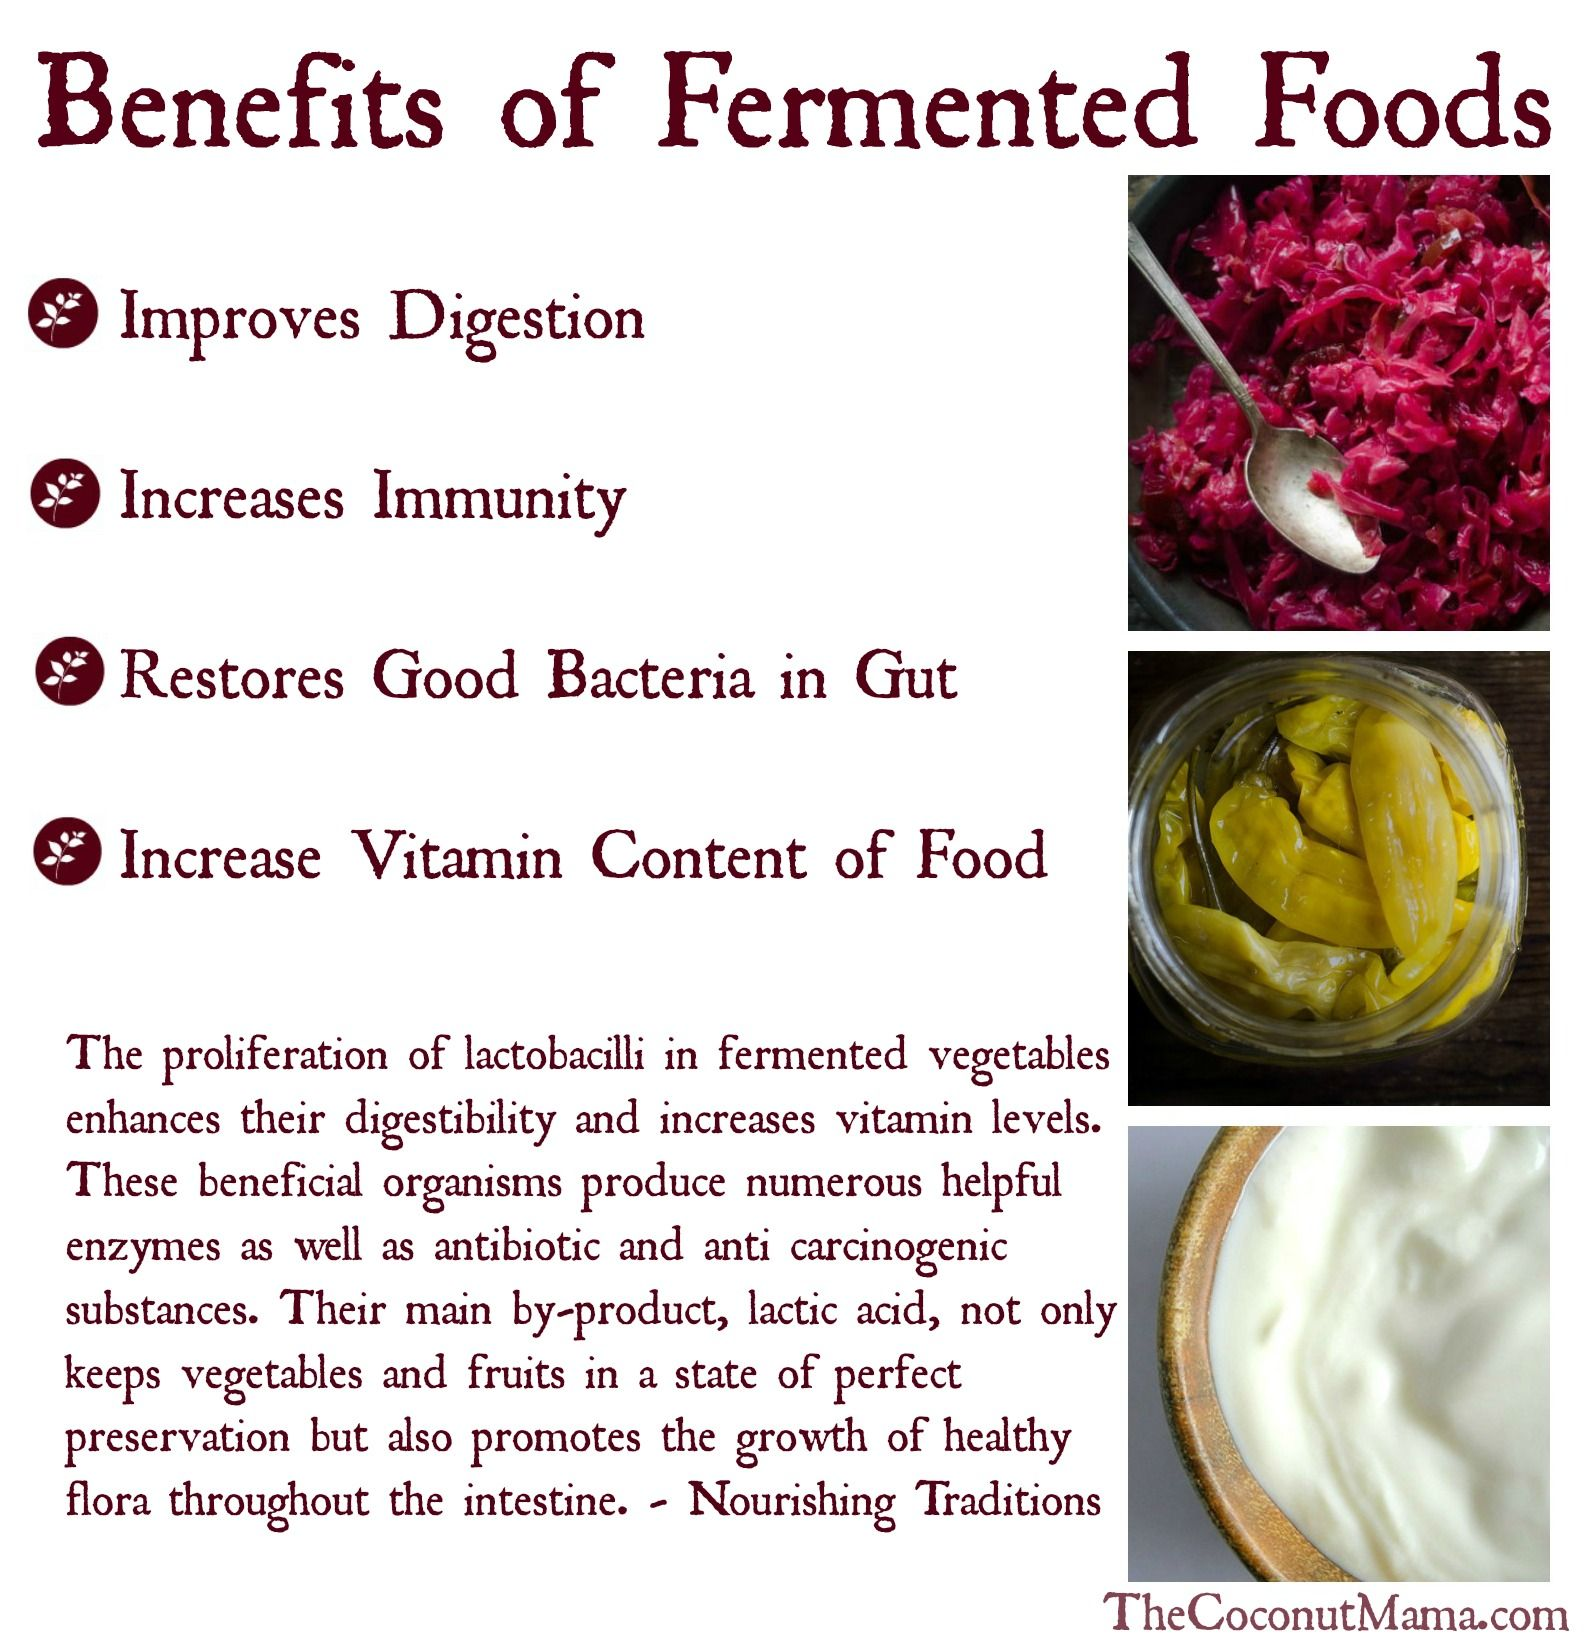 Benefits of Fermented Foods (With images) Fermented